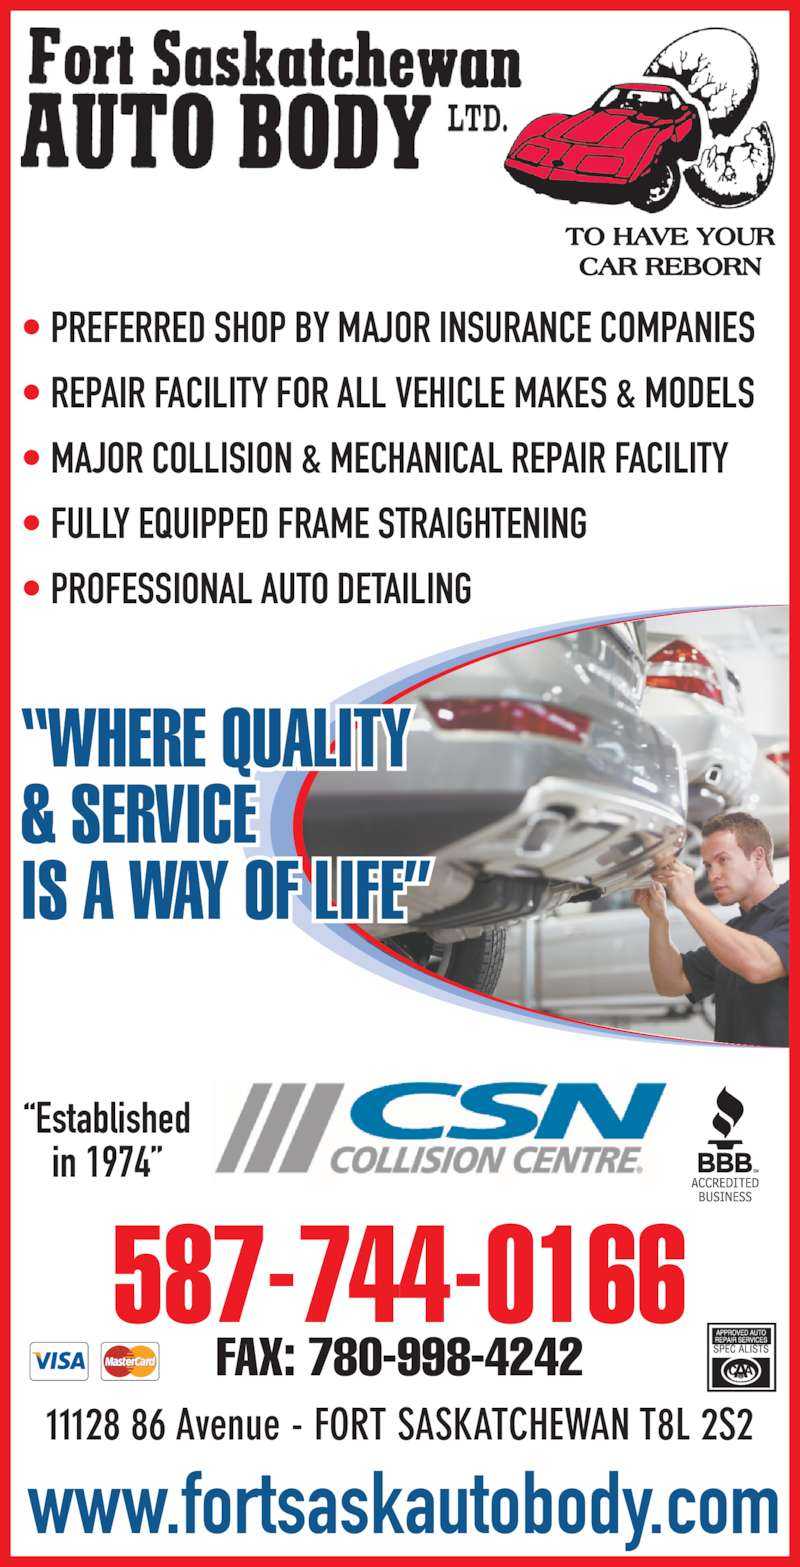 "Fort Saskatchewan Auto Body Ltd (780-998-7464) - Display Ad - • PREFERRED SHOP BY MAJOR INSURANCE COMPANIES • REPAIR FACILITY FOR ALL VEHICLE MAKES & MODELS • MAJOR COLLISION & MECHANICAL REPAIR FACILITY • FULLY EQUIPPED FRAME STRAIGHTENING • PROFESSIONAL AUTO DETAILING ""WHERE QUALITY & SERVICE IS A WAY OF LIFE"" www.fortsaskautobody.com 587-744-0166 FAX: 780-998-4242 ""Established in 1974"" 11128 86 Avenue - FORT SASKATCHEWAN T8L 2S2"